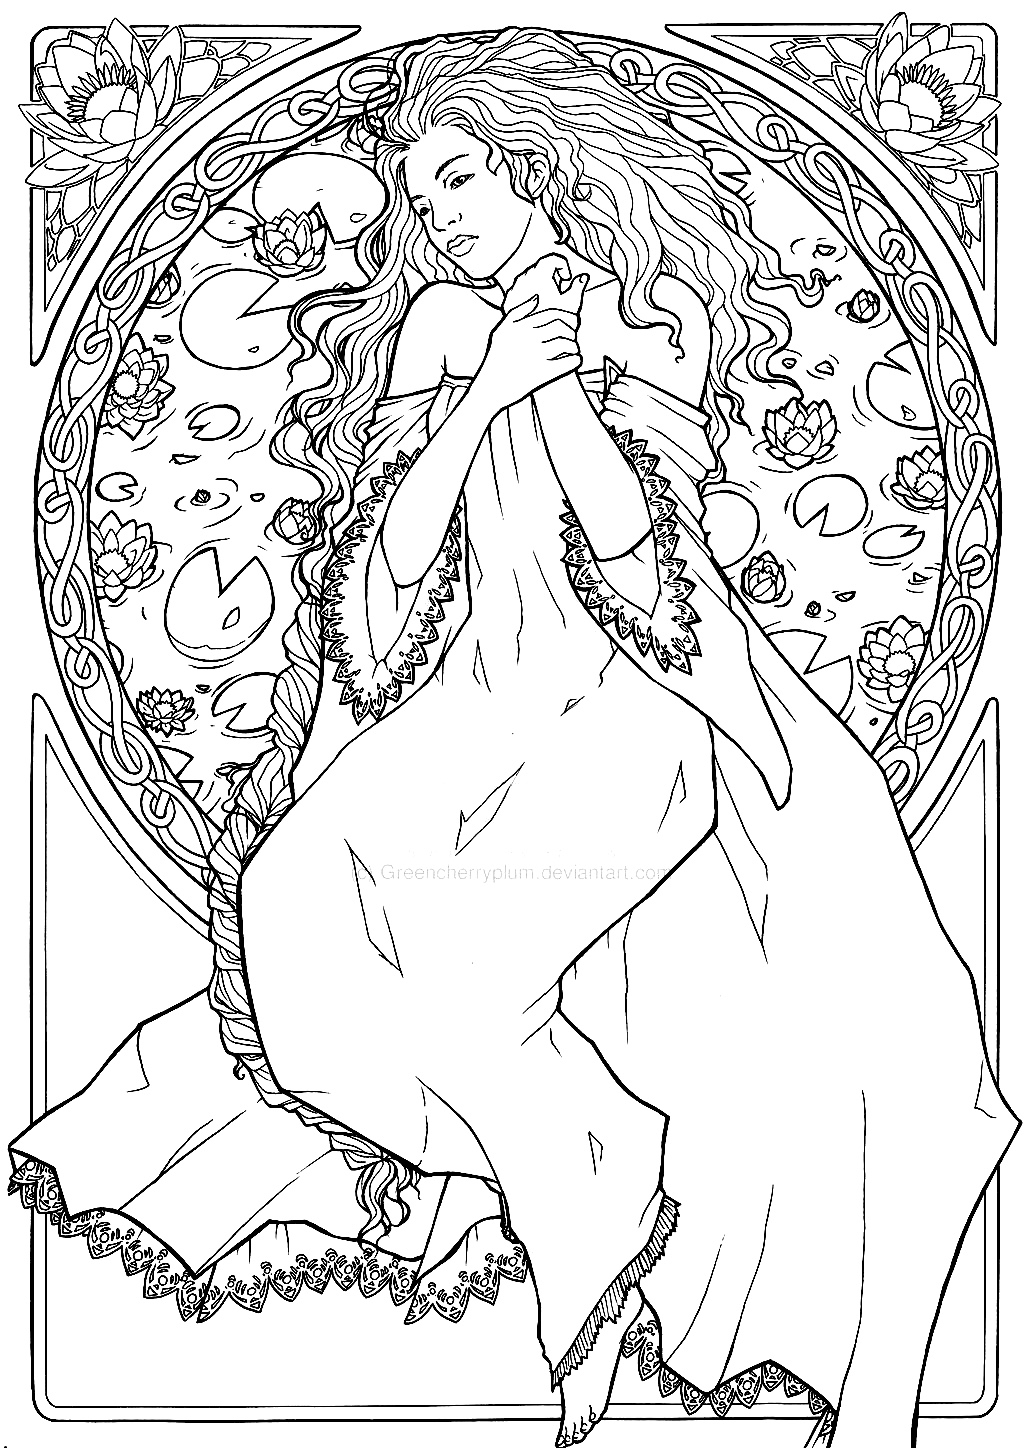 A beautiful drawing inspired by Art Nouveau, with a woman and flowers